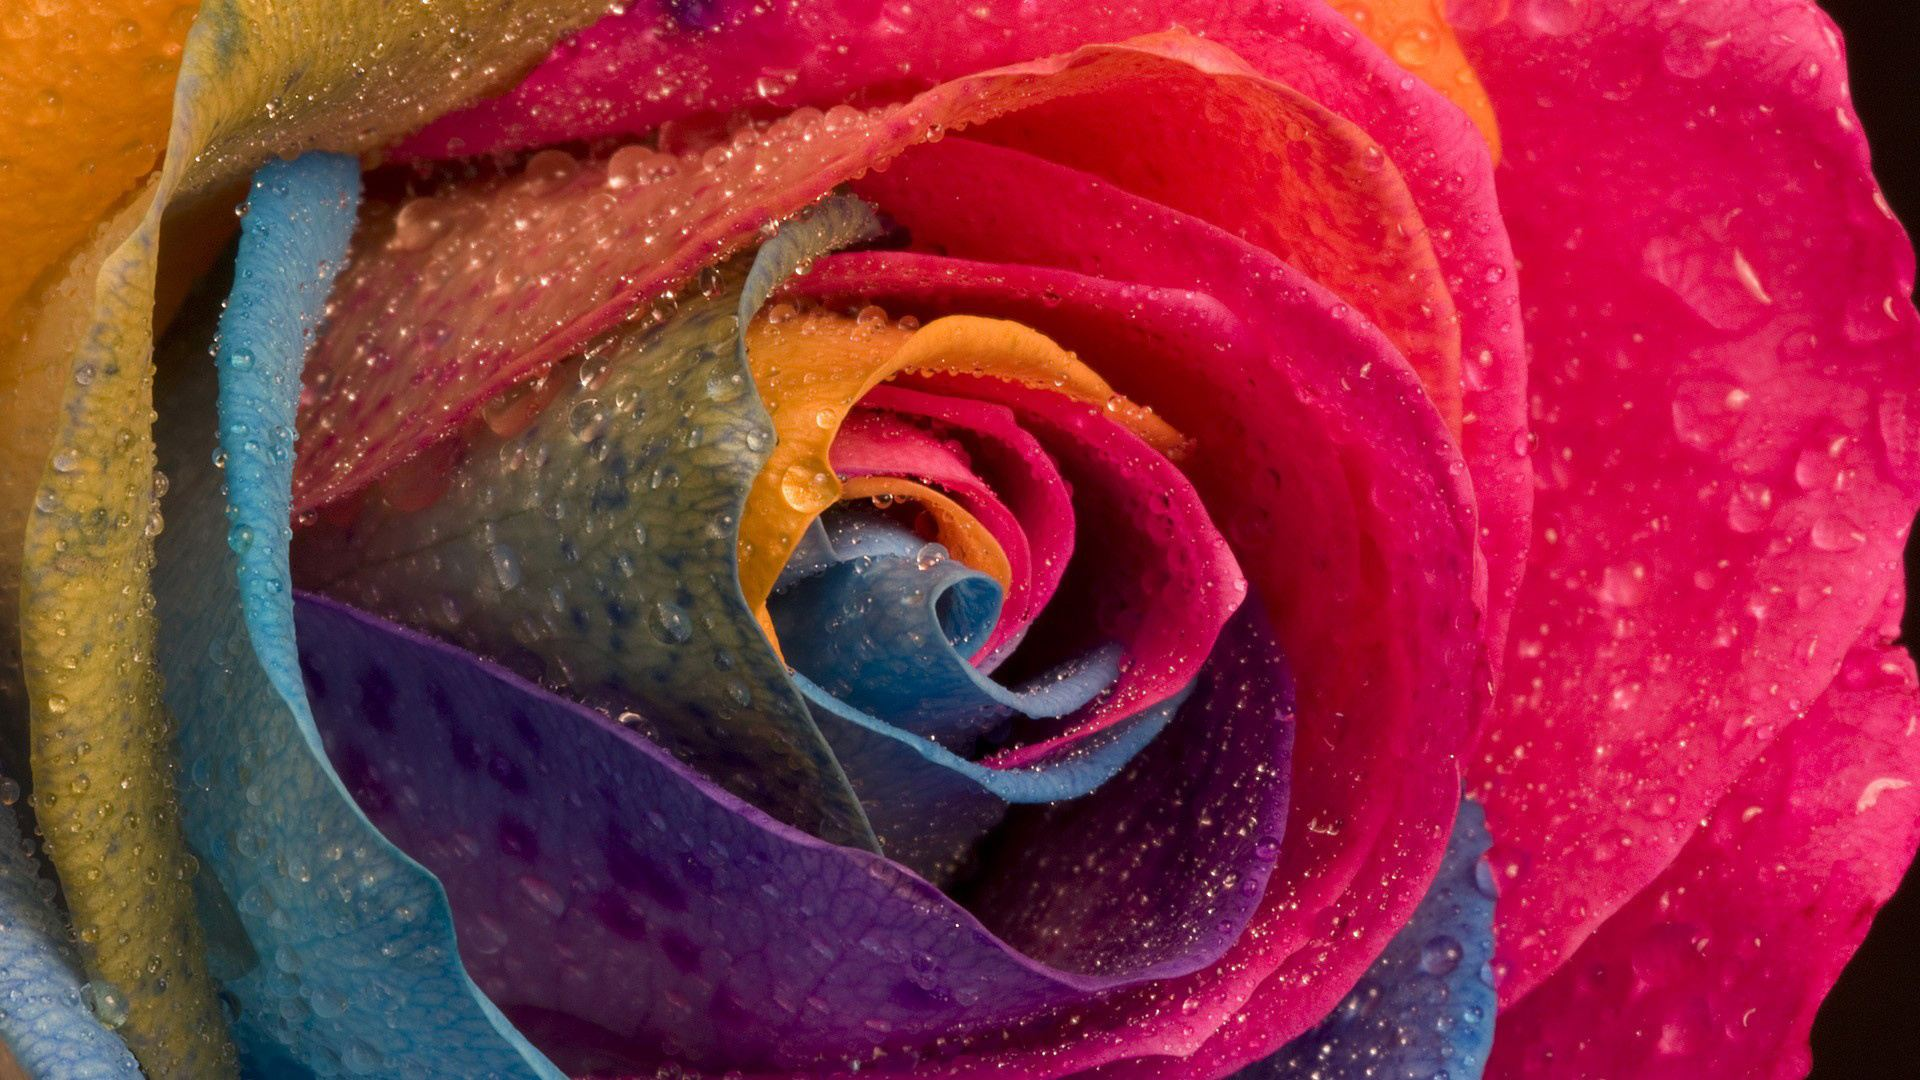 Roses 1080p wallpaper high definition high quality for Dual color roses